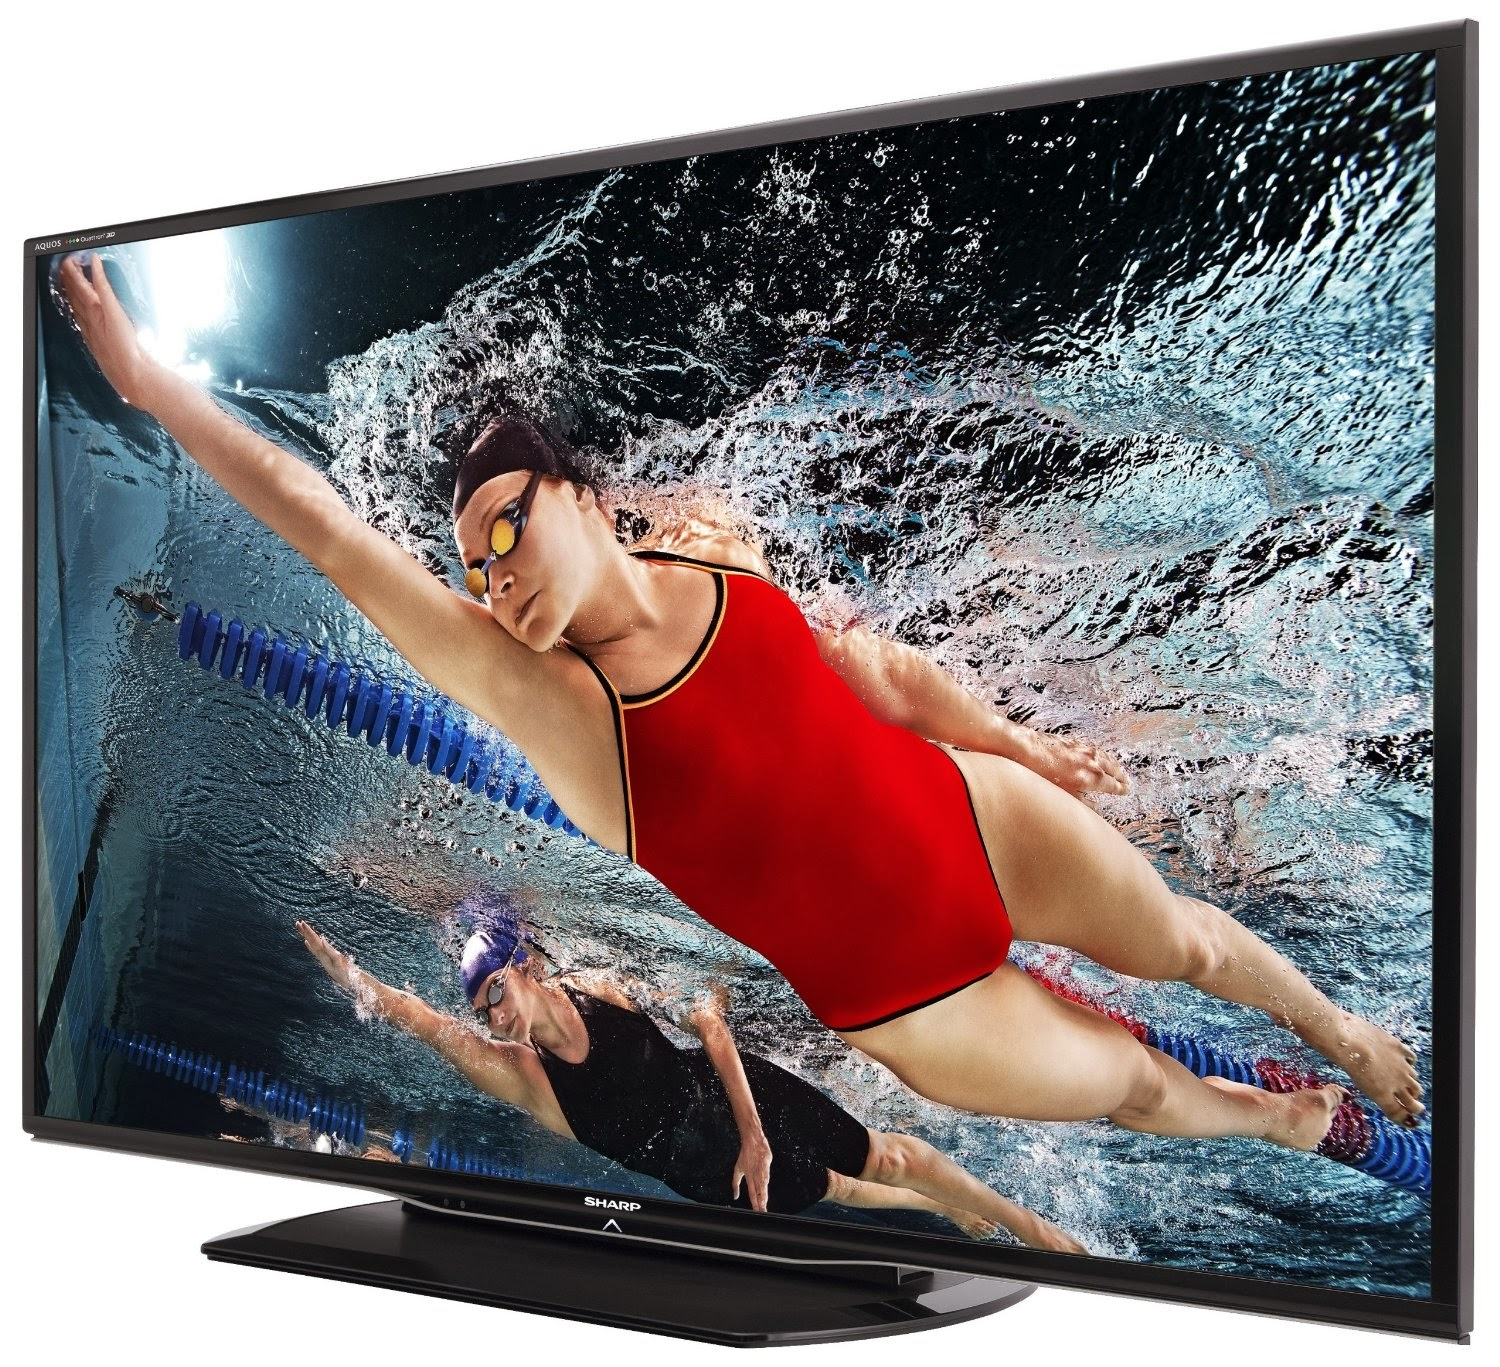 sharp 70 inch aquos led smart tv manual